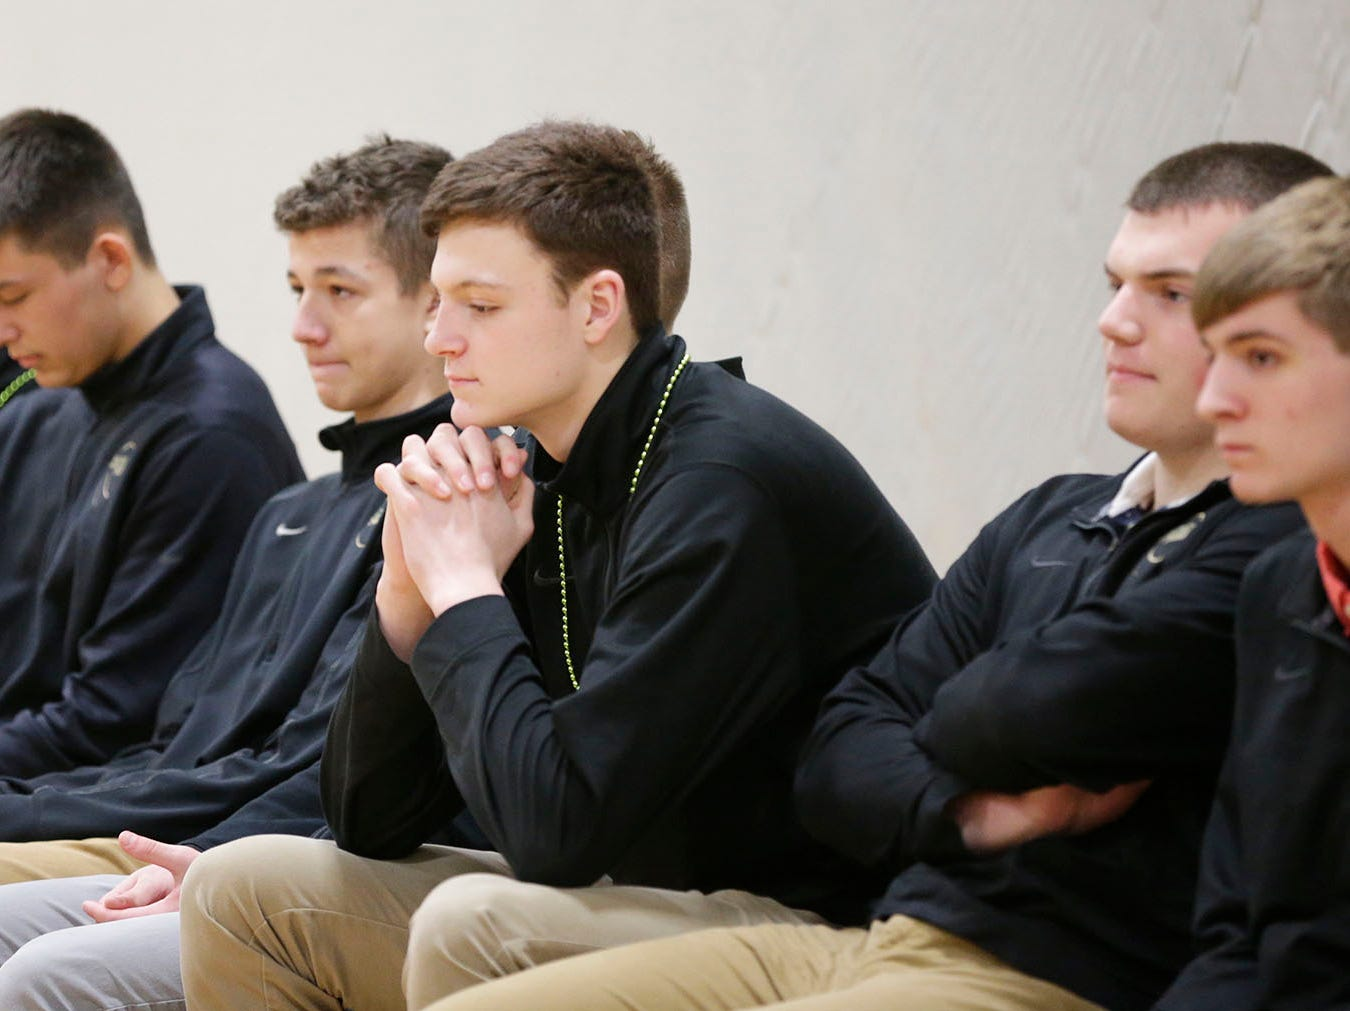 Sheboygan Lutheran basketball players contemplate their trip to state, Thursday, March 14, 2109, in Sheboygan, Wis.